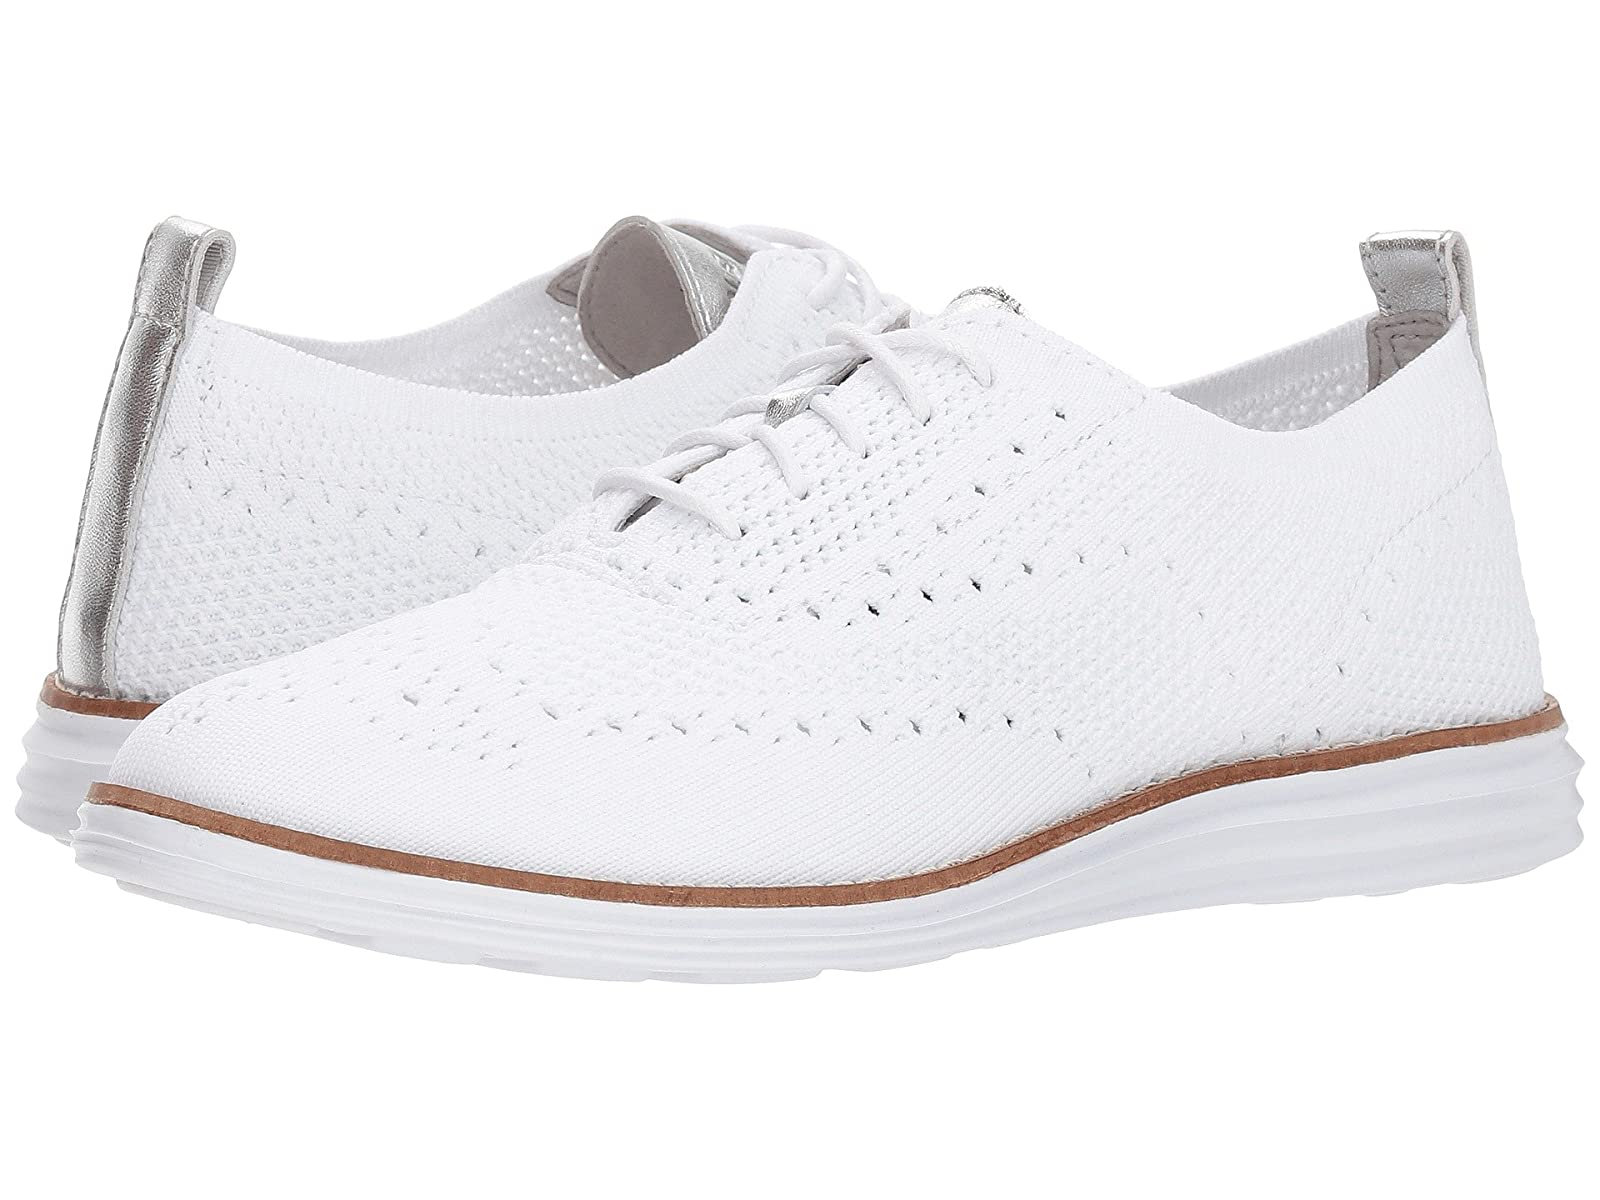 Cole Haan Original Grand Knit Wingtip IICheap and distinctive eye-catching shoes